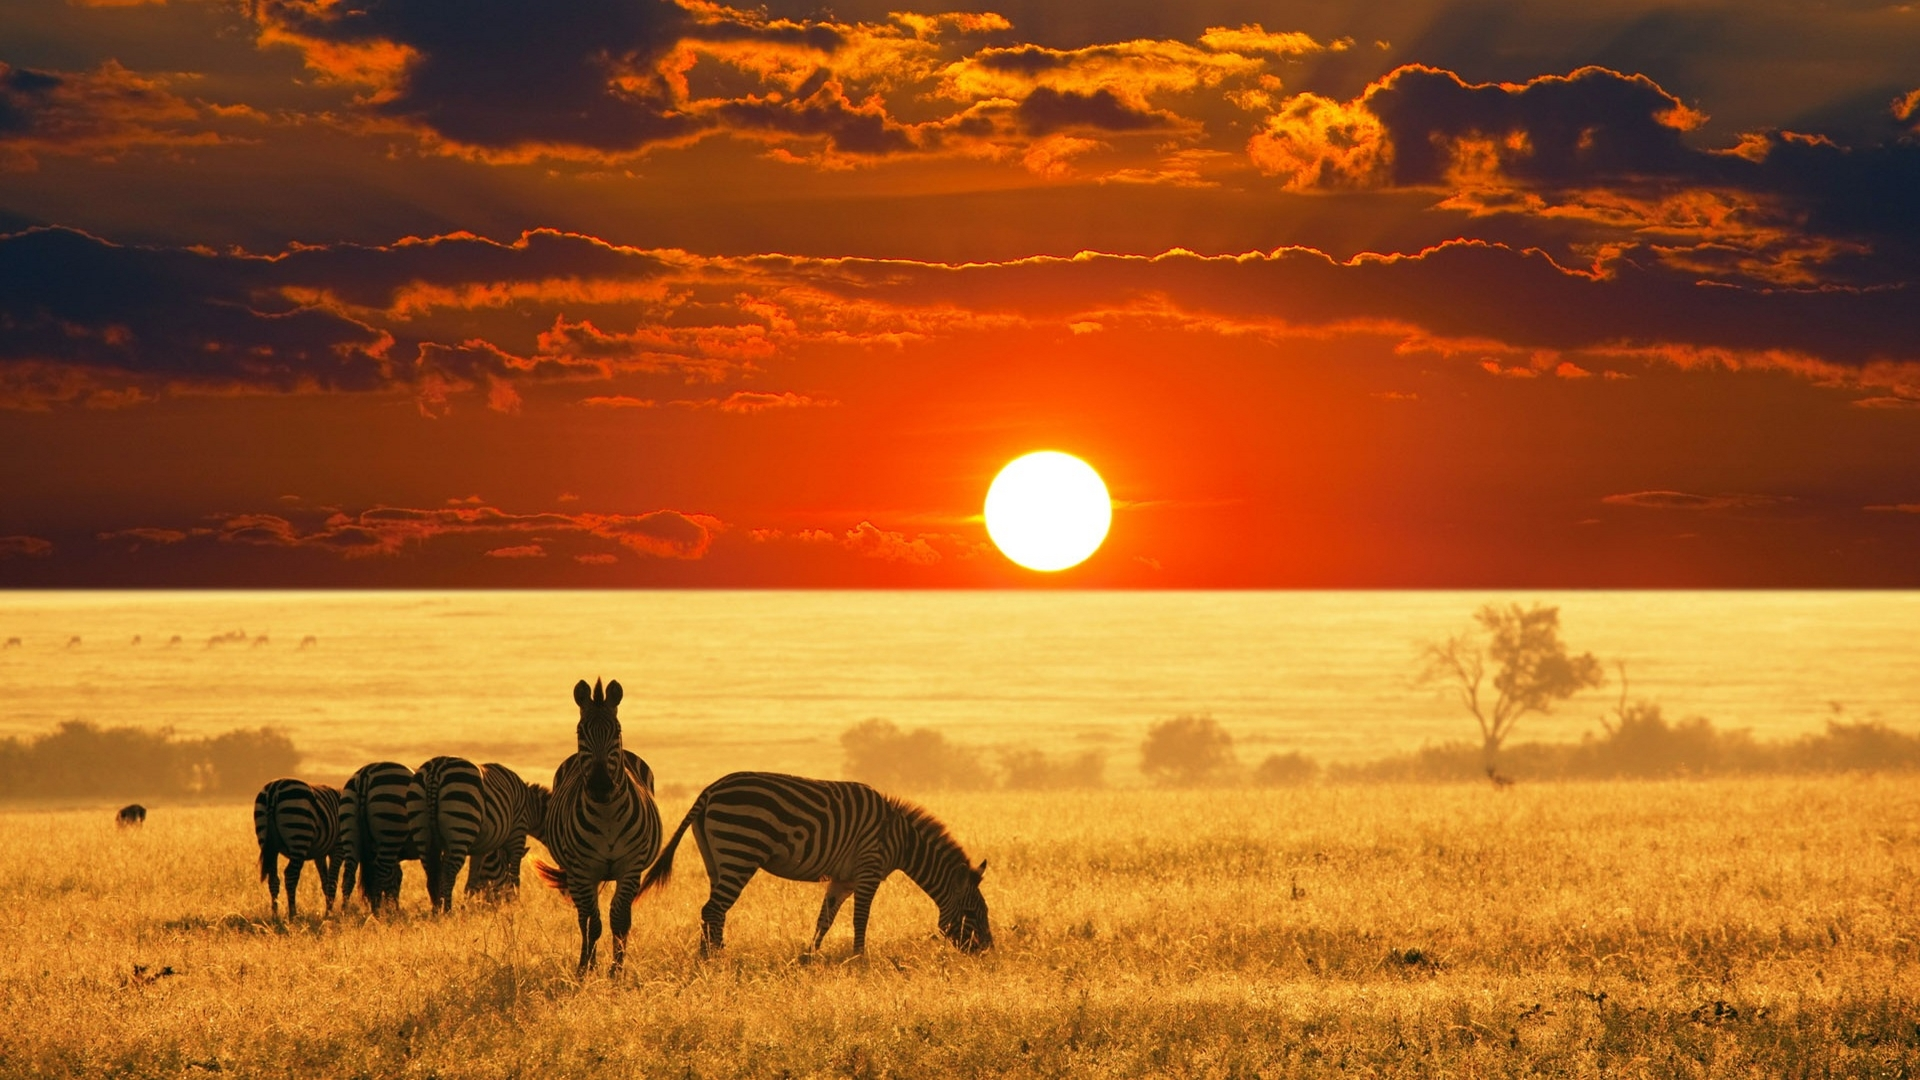 Sunset And Zebras Hd Wallpaper - Safari Africa Hd , HD Wallpaper & Backgrounds